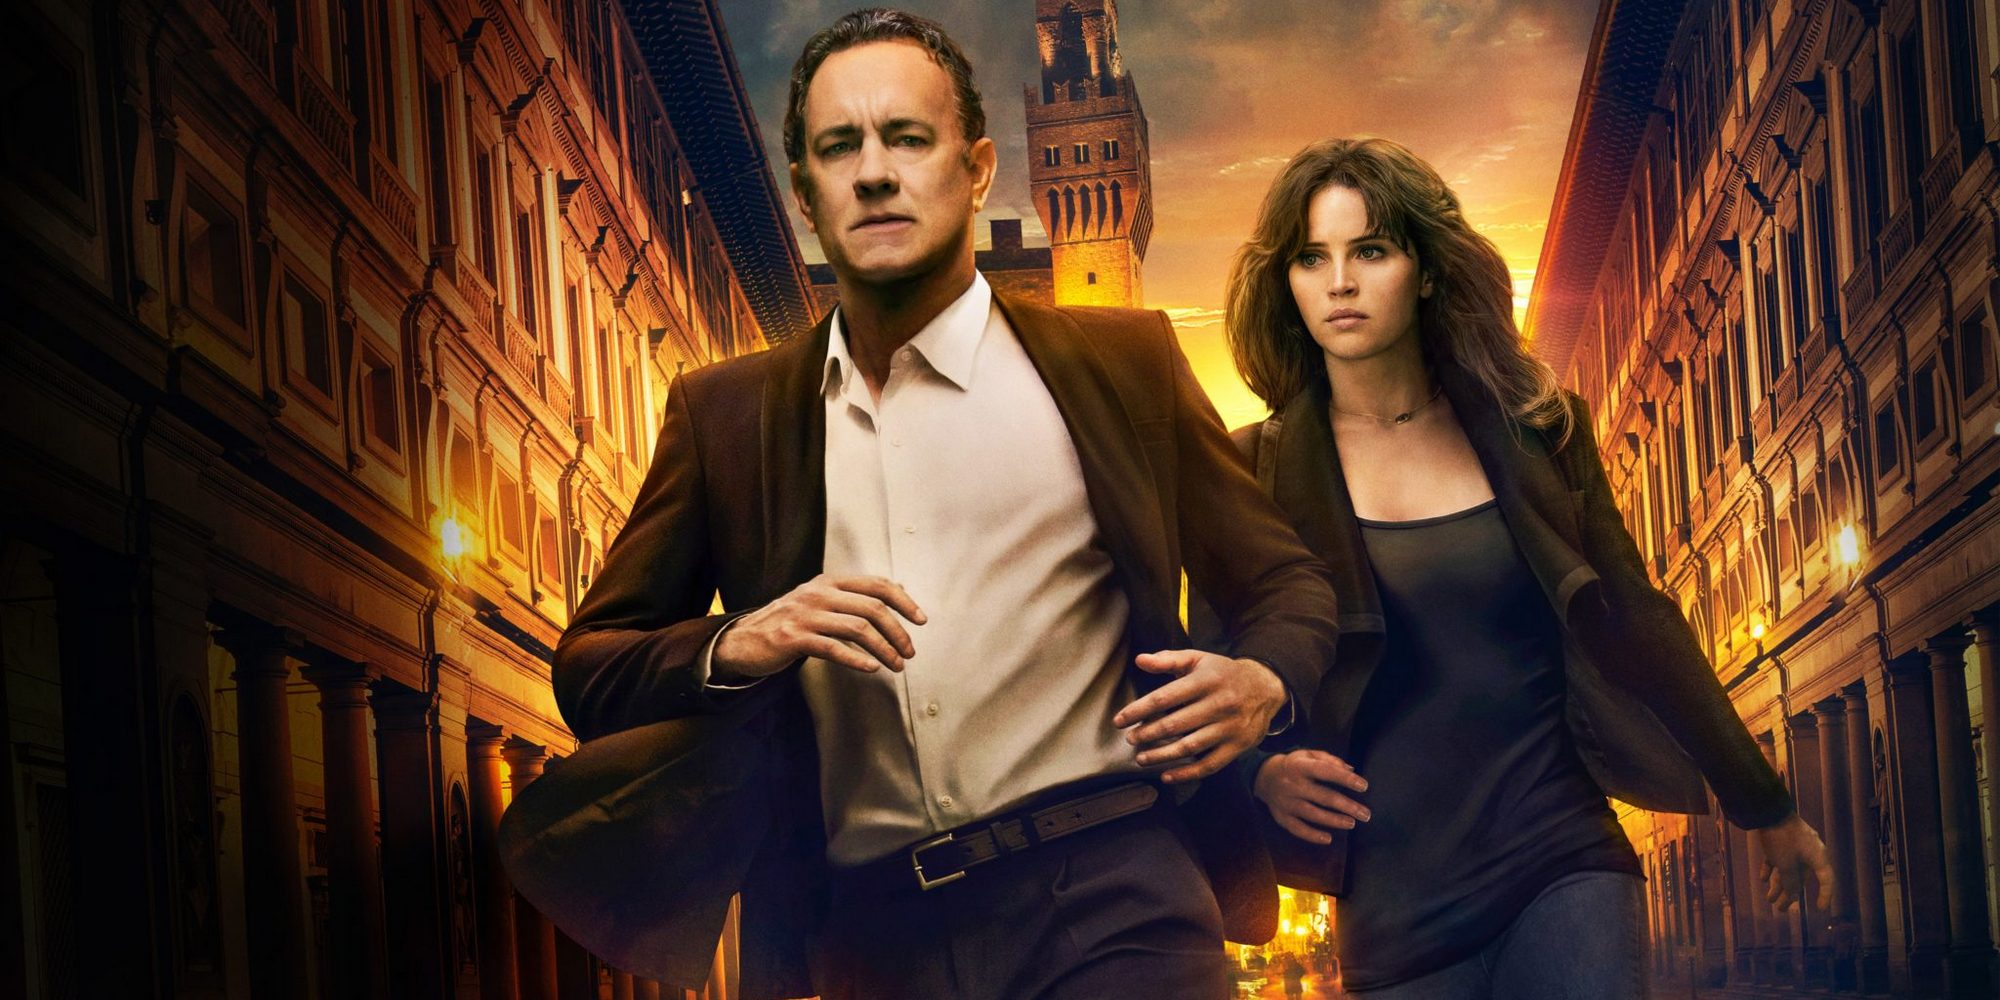 /images/upload/blog/1649/1649_Inferno-Movie-Tom-Hanks-with-Felicity-Jones-5K.jpg